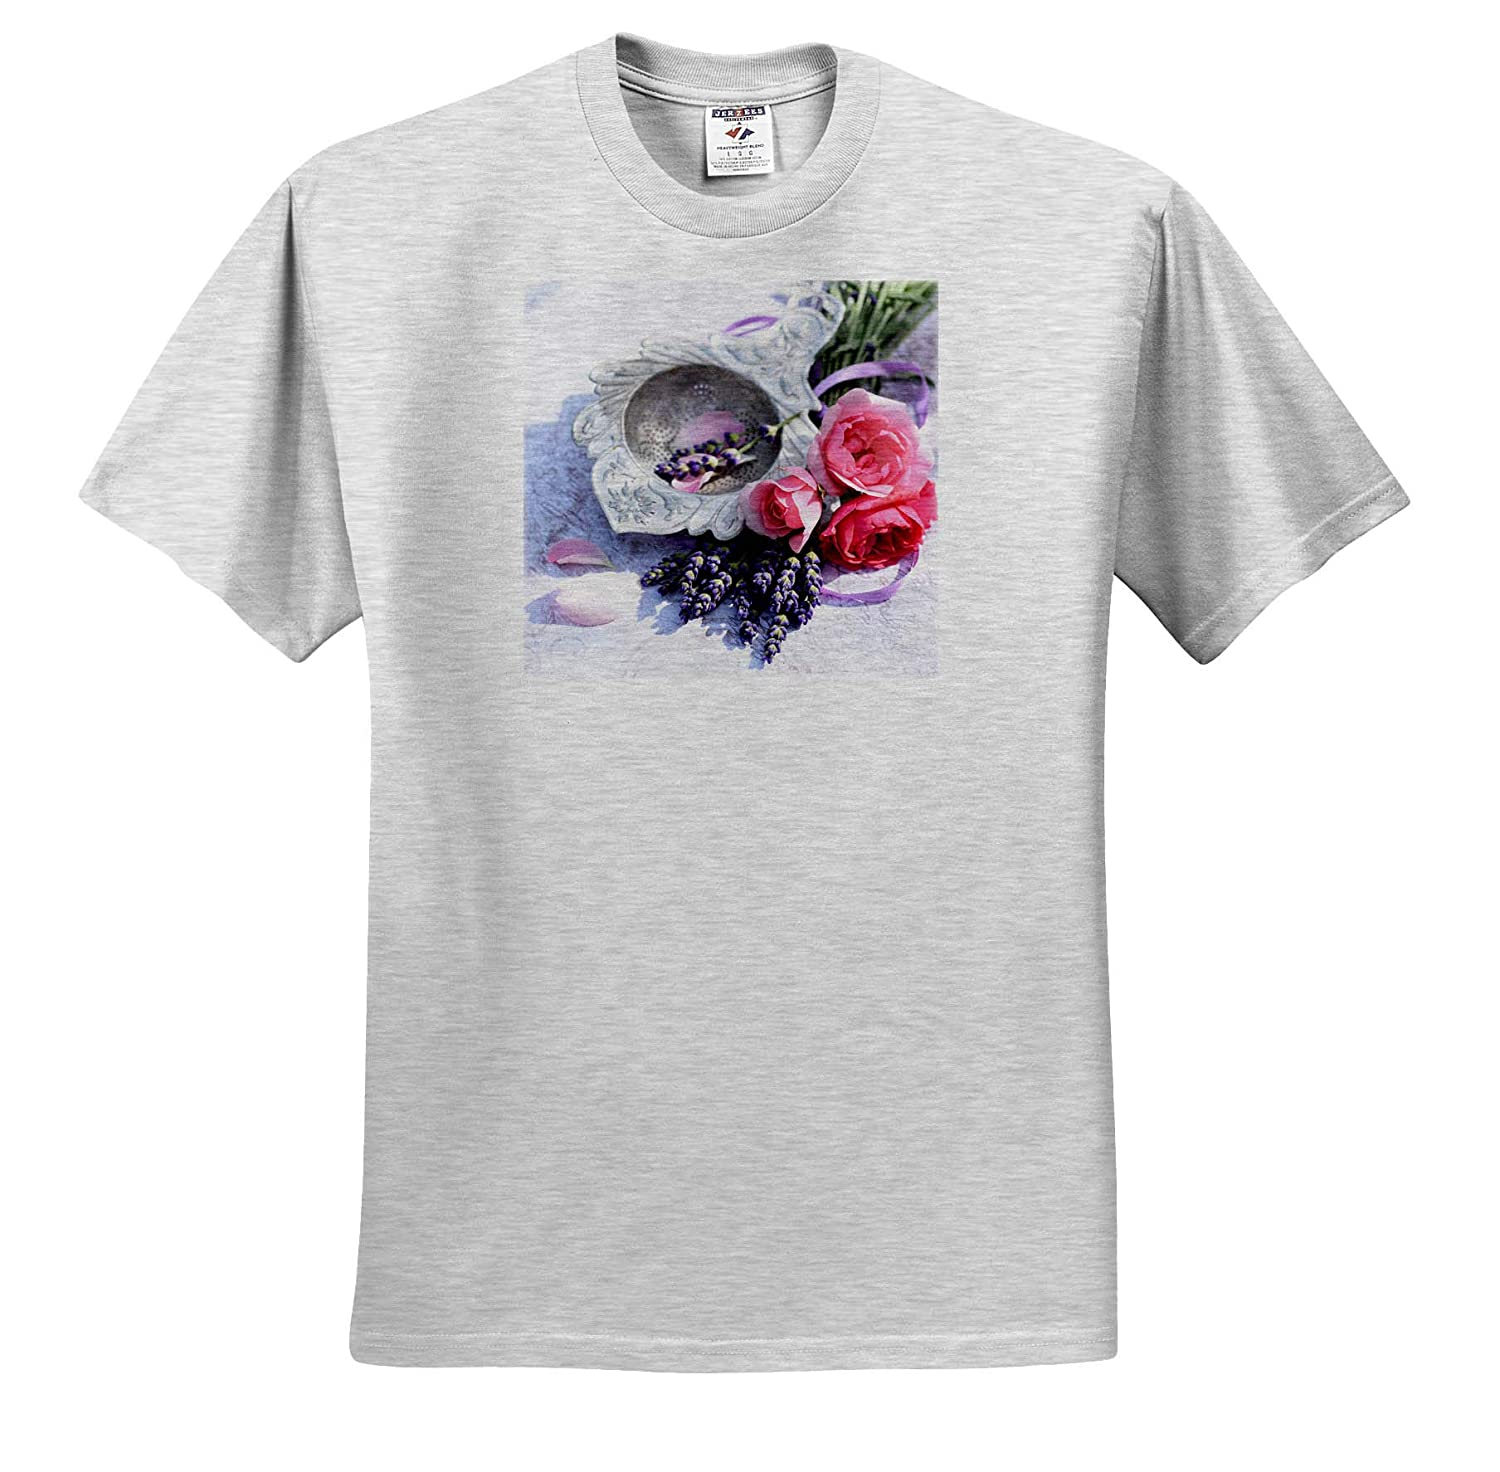 3dRose Uta Naumann Photography Stilllife Summer Stillife with Pink Roses and Lavender in A Silver Bowl T-Shirts